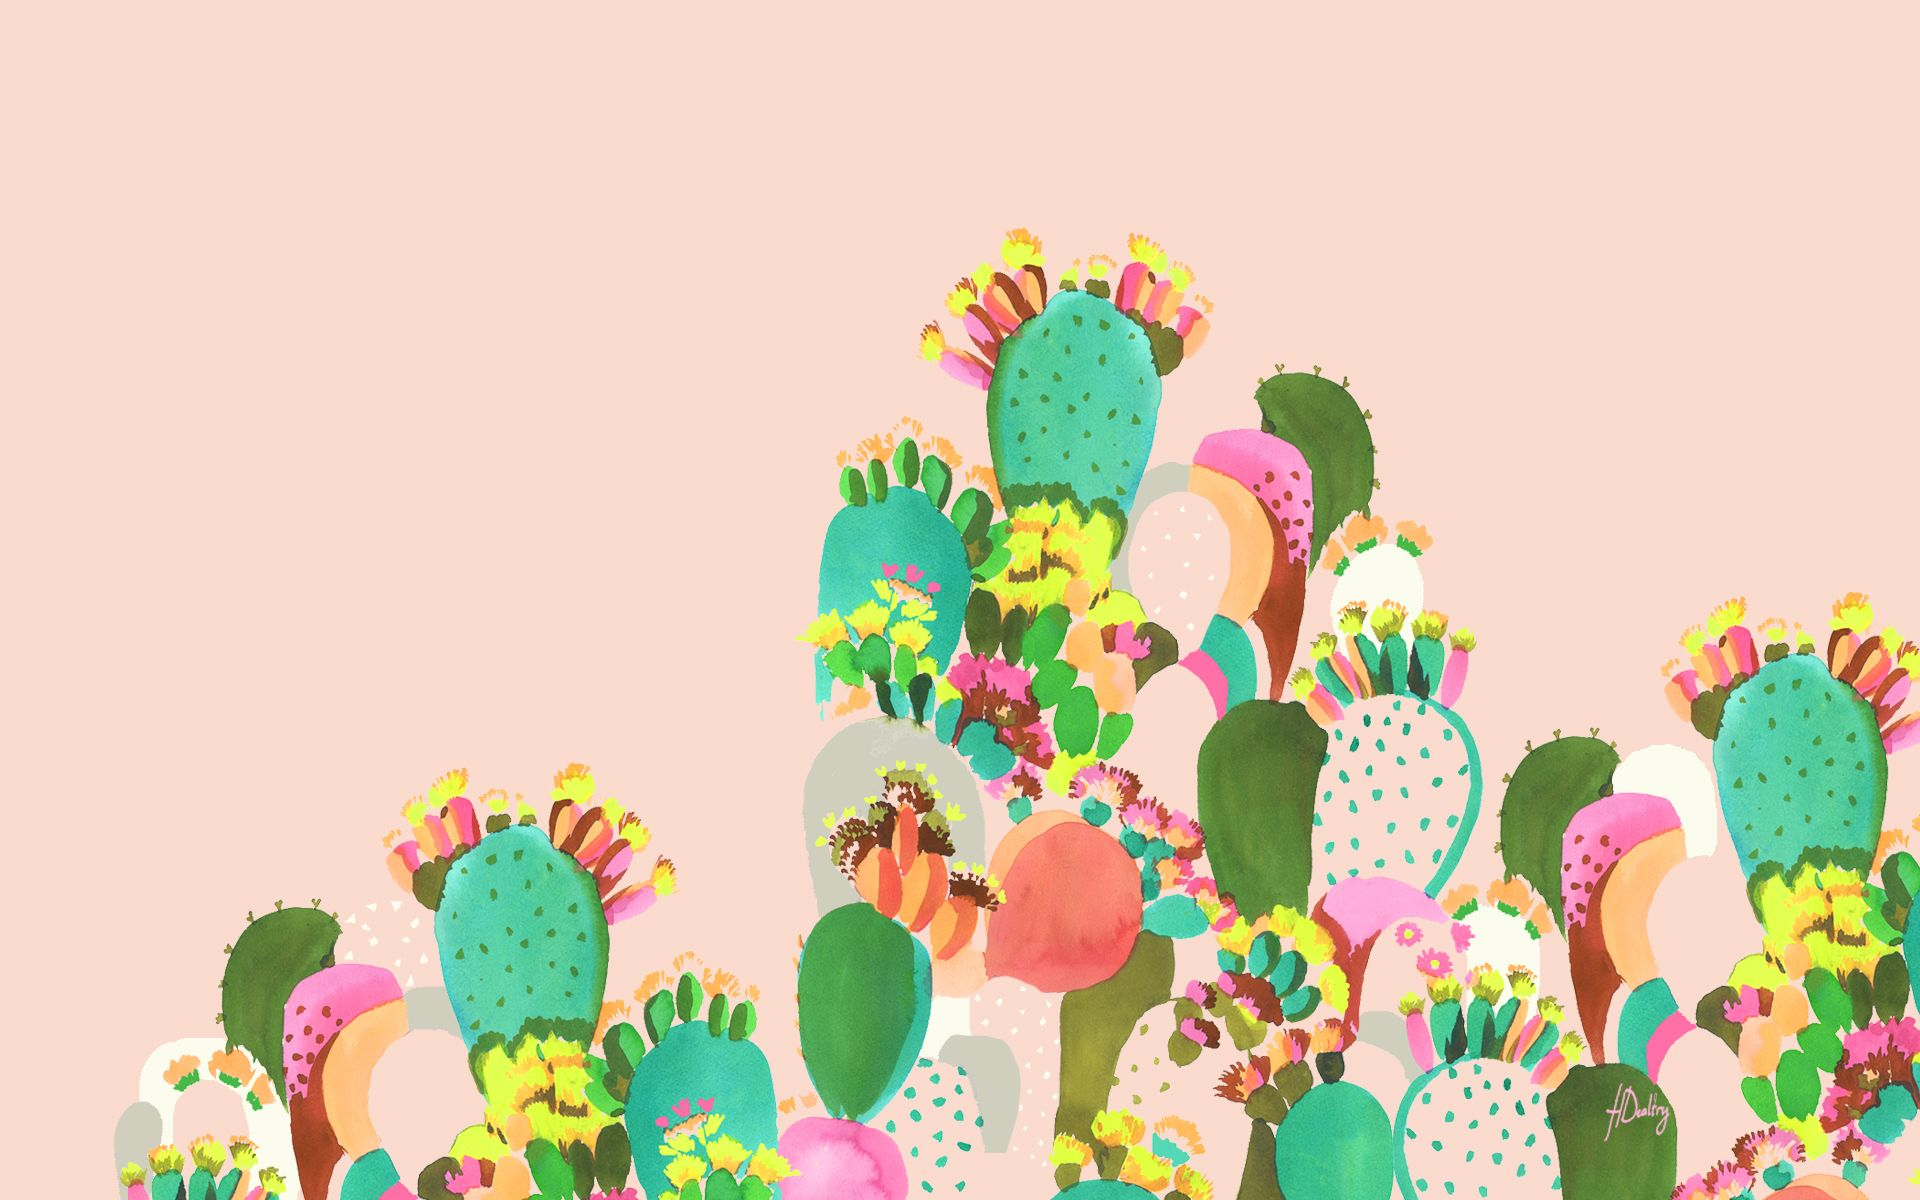 hd cactus wallpapers - photo #38